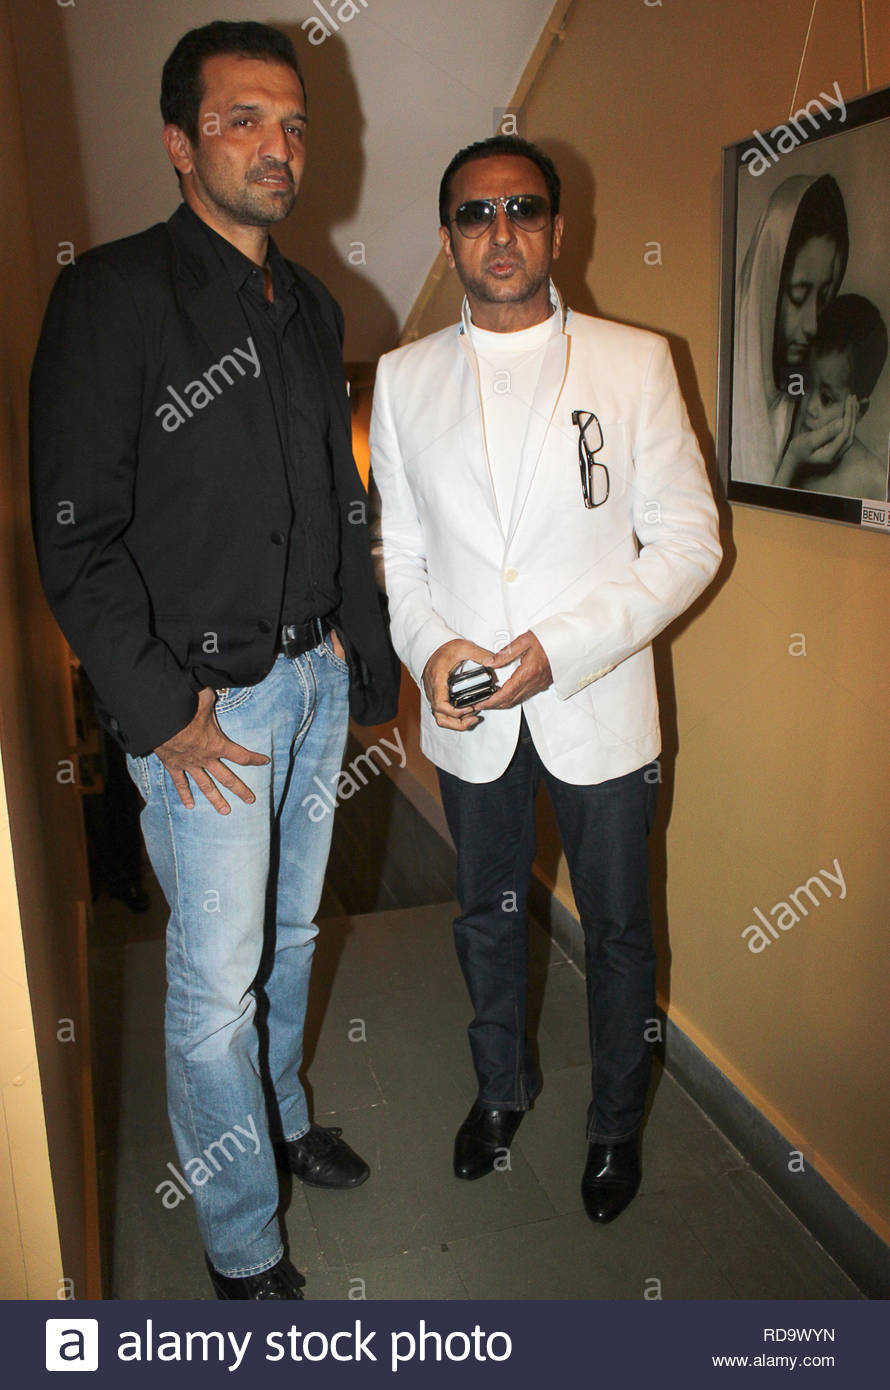 Fashion photographer Atul Kasbekar and Bollywood actor Gulshan Grover at the inauguration of Homeopath Dr Mukesh Batra's (not in picture) 8th annual charity photgraphy exhibition in Mumbai, India on September 13, 2012. (SOLARIS IMAGES) - Stock Image